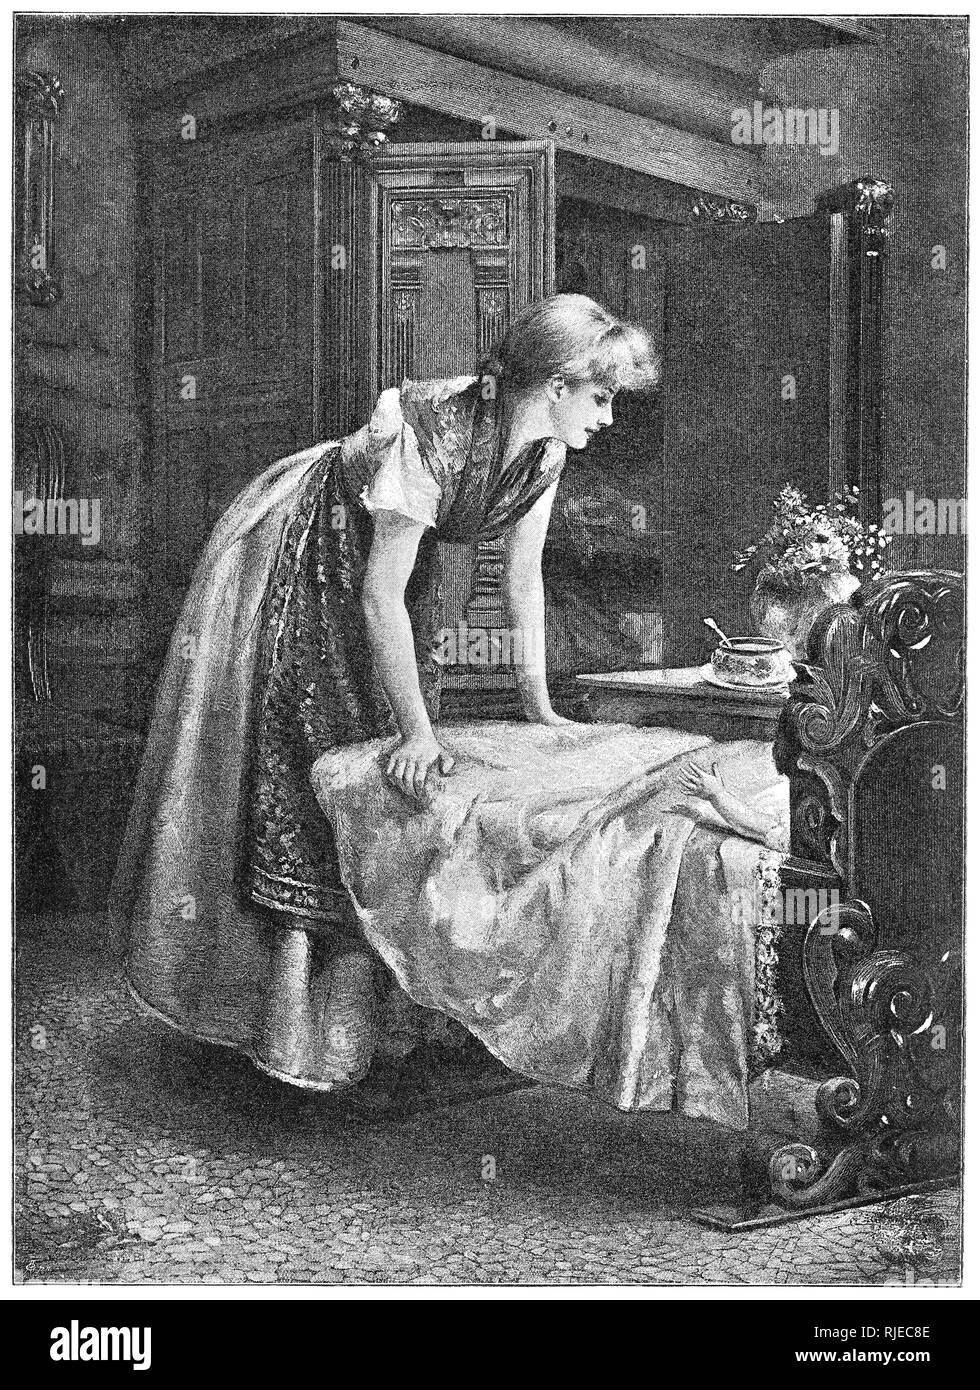 Victorian illustration 'Mother's darling.' From Nister's Holiday Annual 1892. - Stock Image